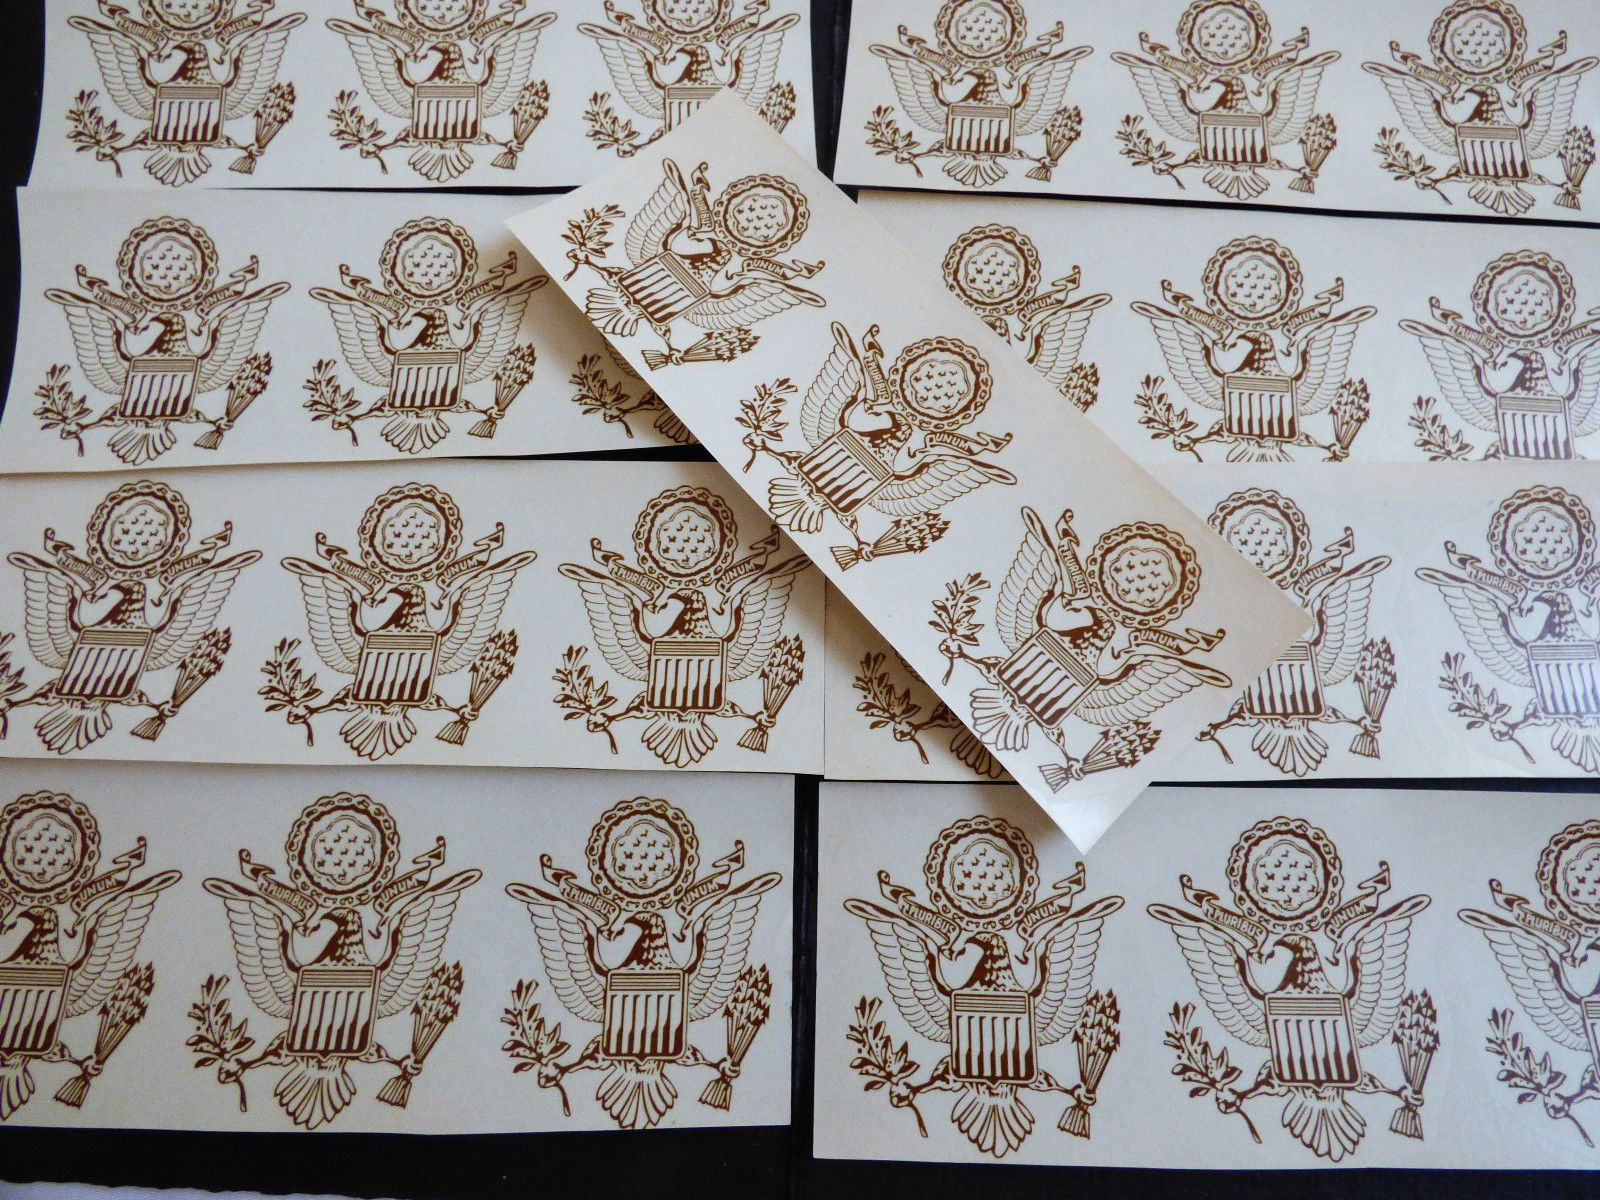 VTG lot of 27 US Great Seal Eagle coat of arms Ceramic Decals | eBay